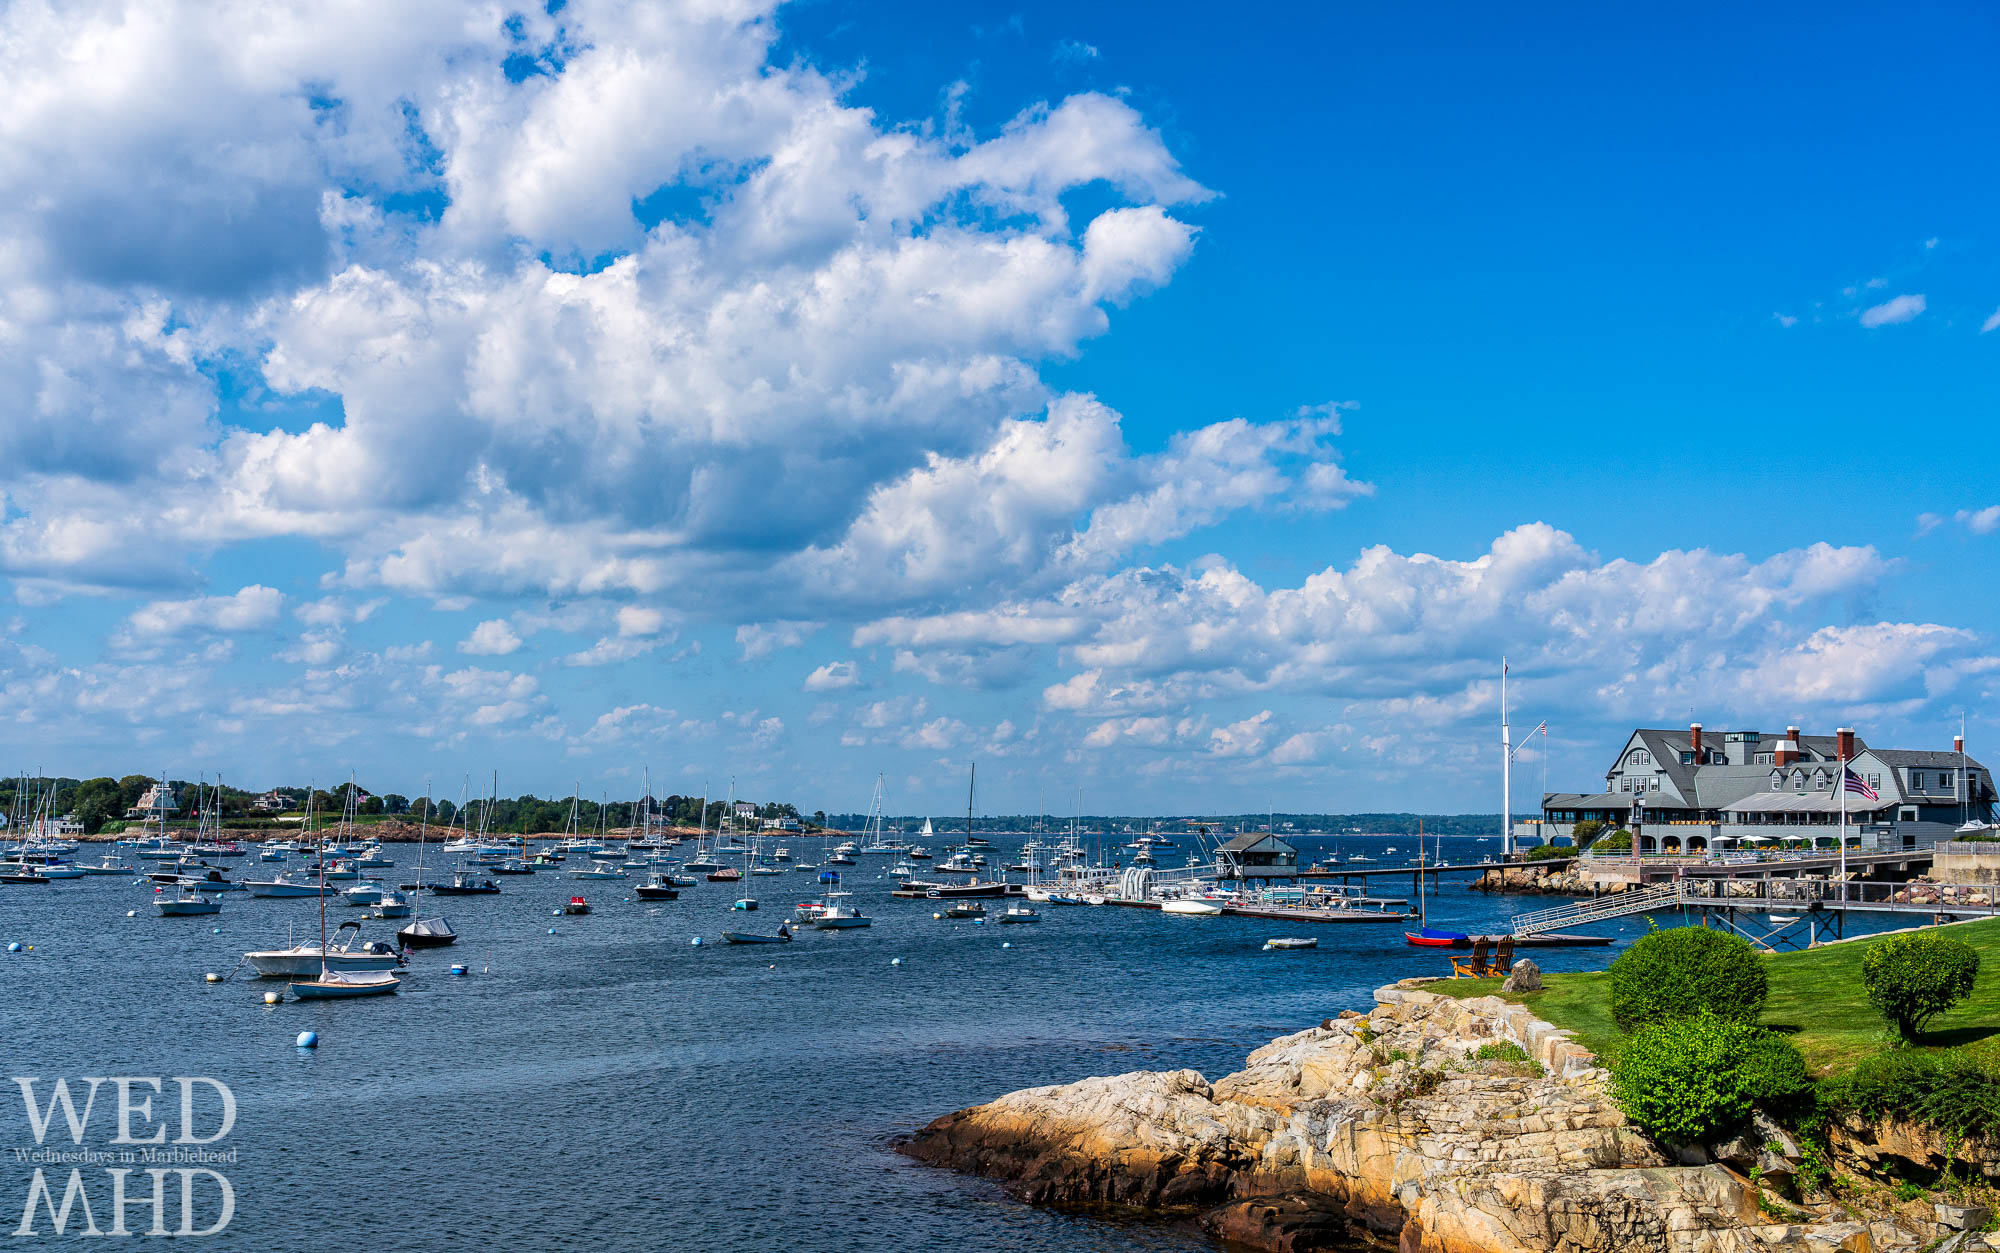 Another favorite public way on Marblehead Neck is Peabody Lane which offers a great view of the Corinthian Yacht Club